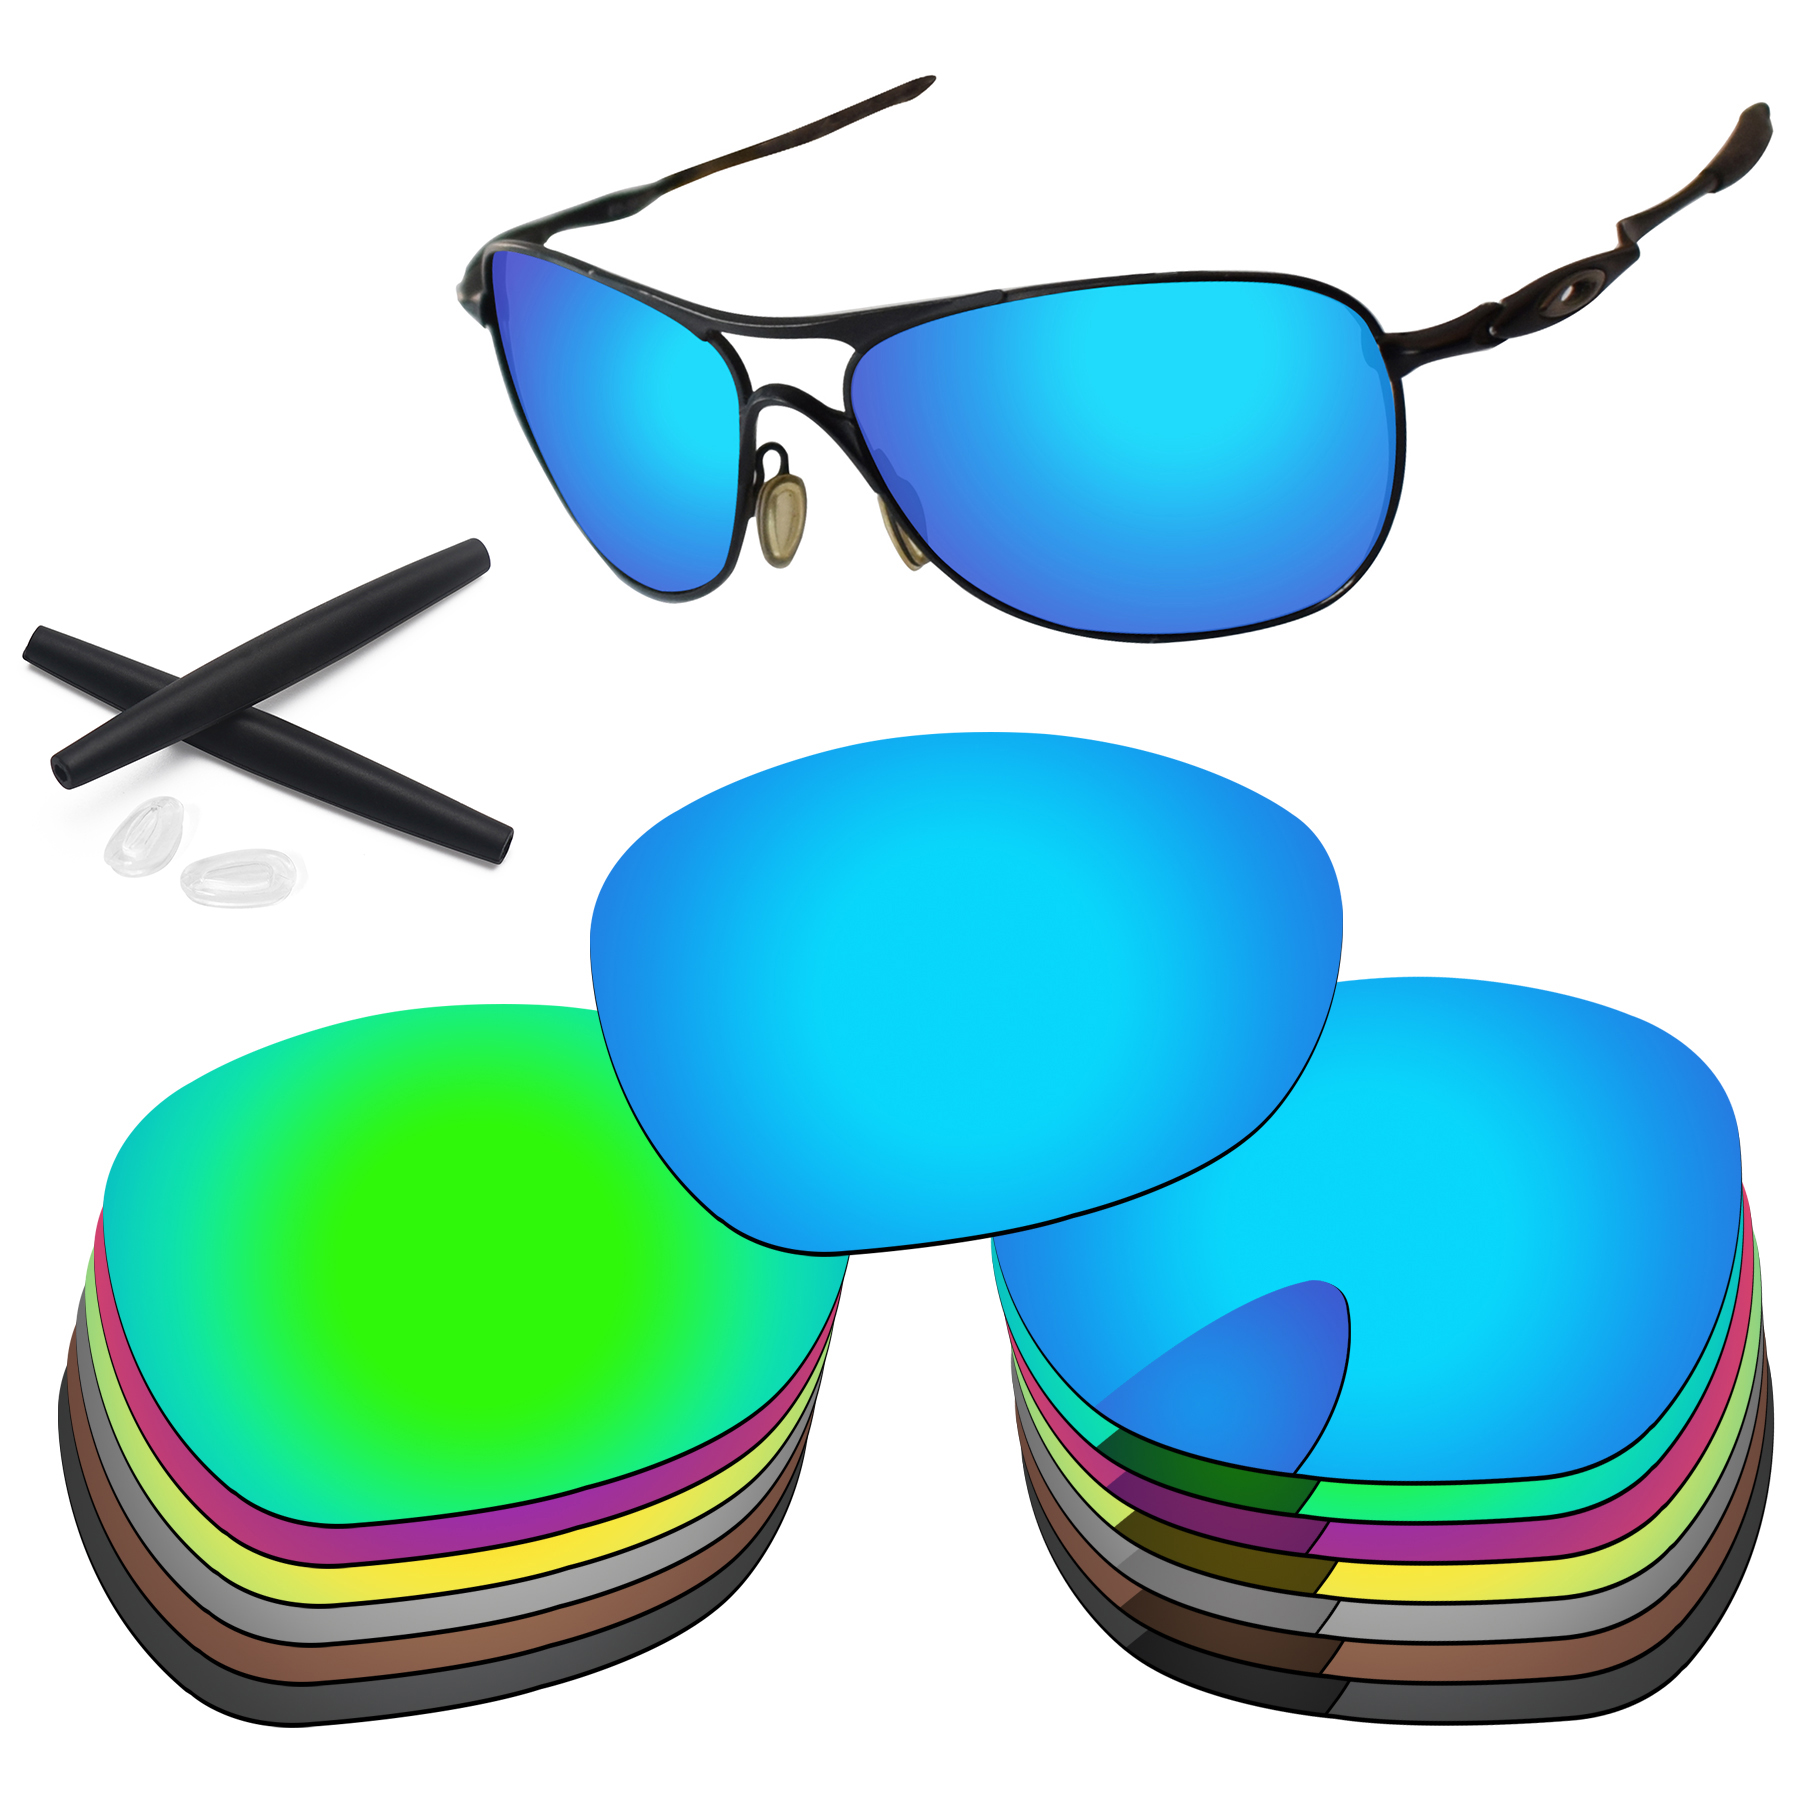 PapaViva Polarized Replacement Lenses and Ear Socks & Nose Pads for Authentic Crosshair New 2012 OO4060 - Multiple Options